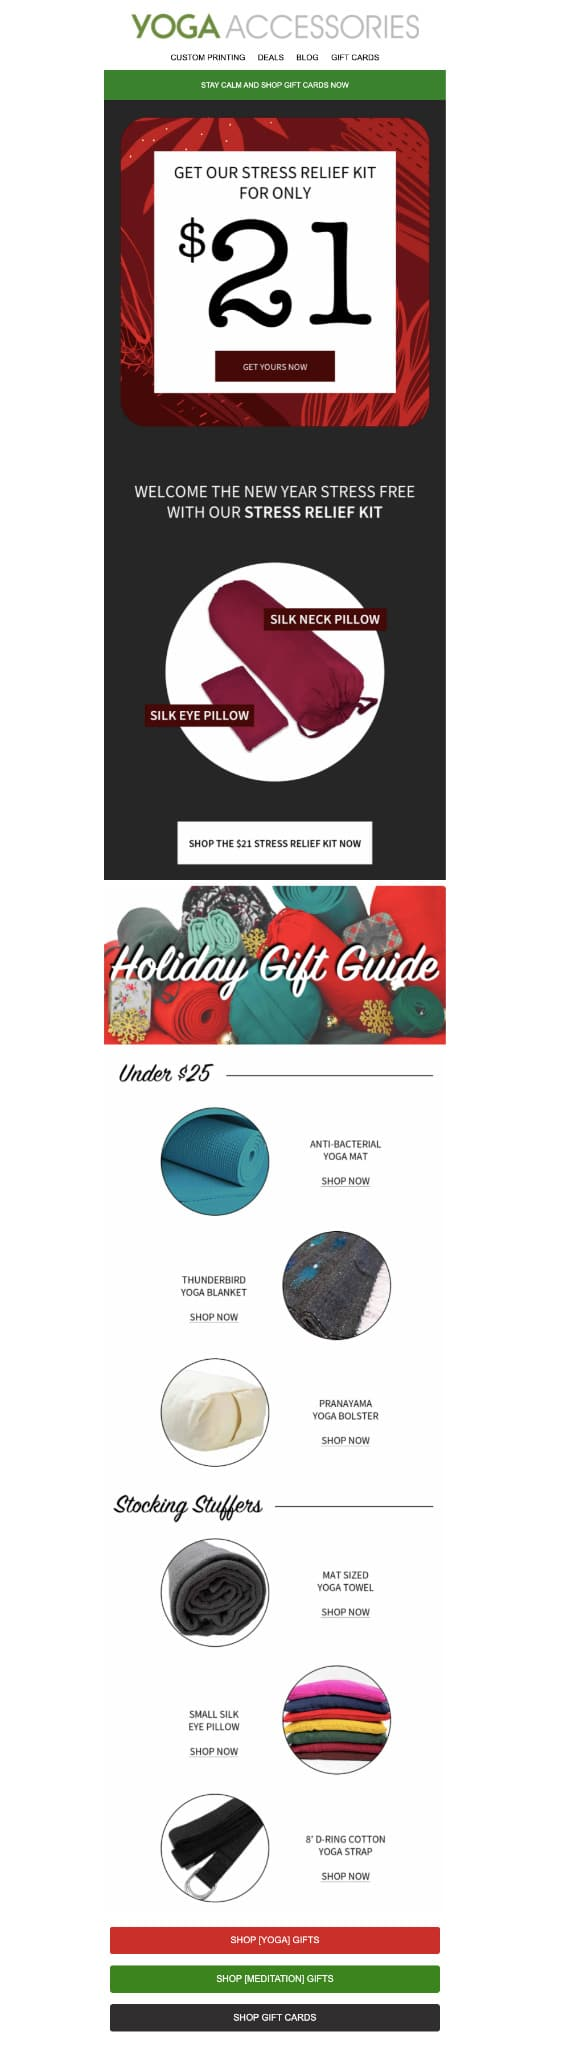 Holiday promotional email from Yoga Accessories